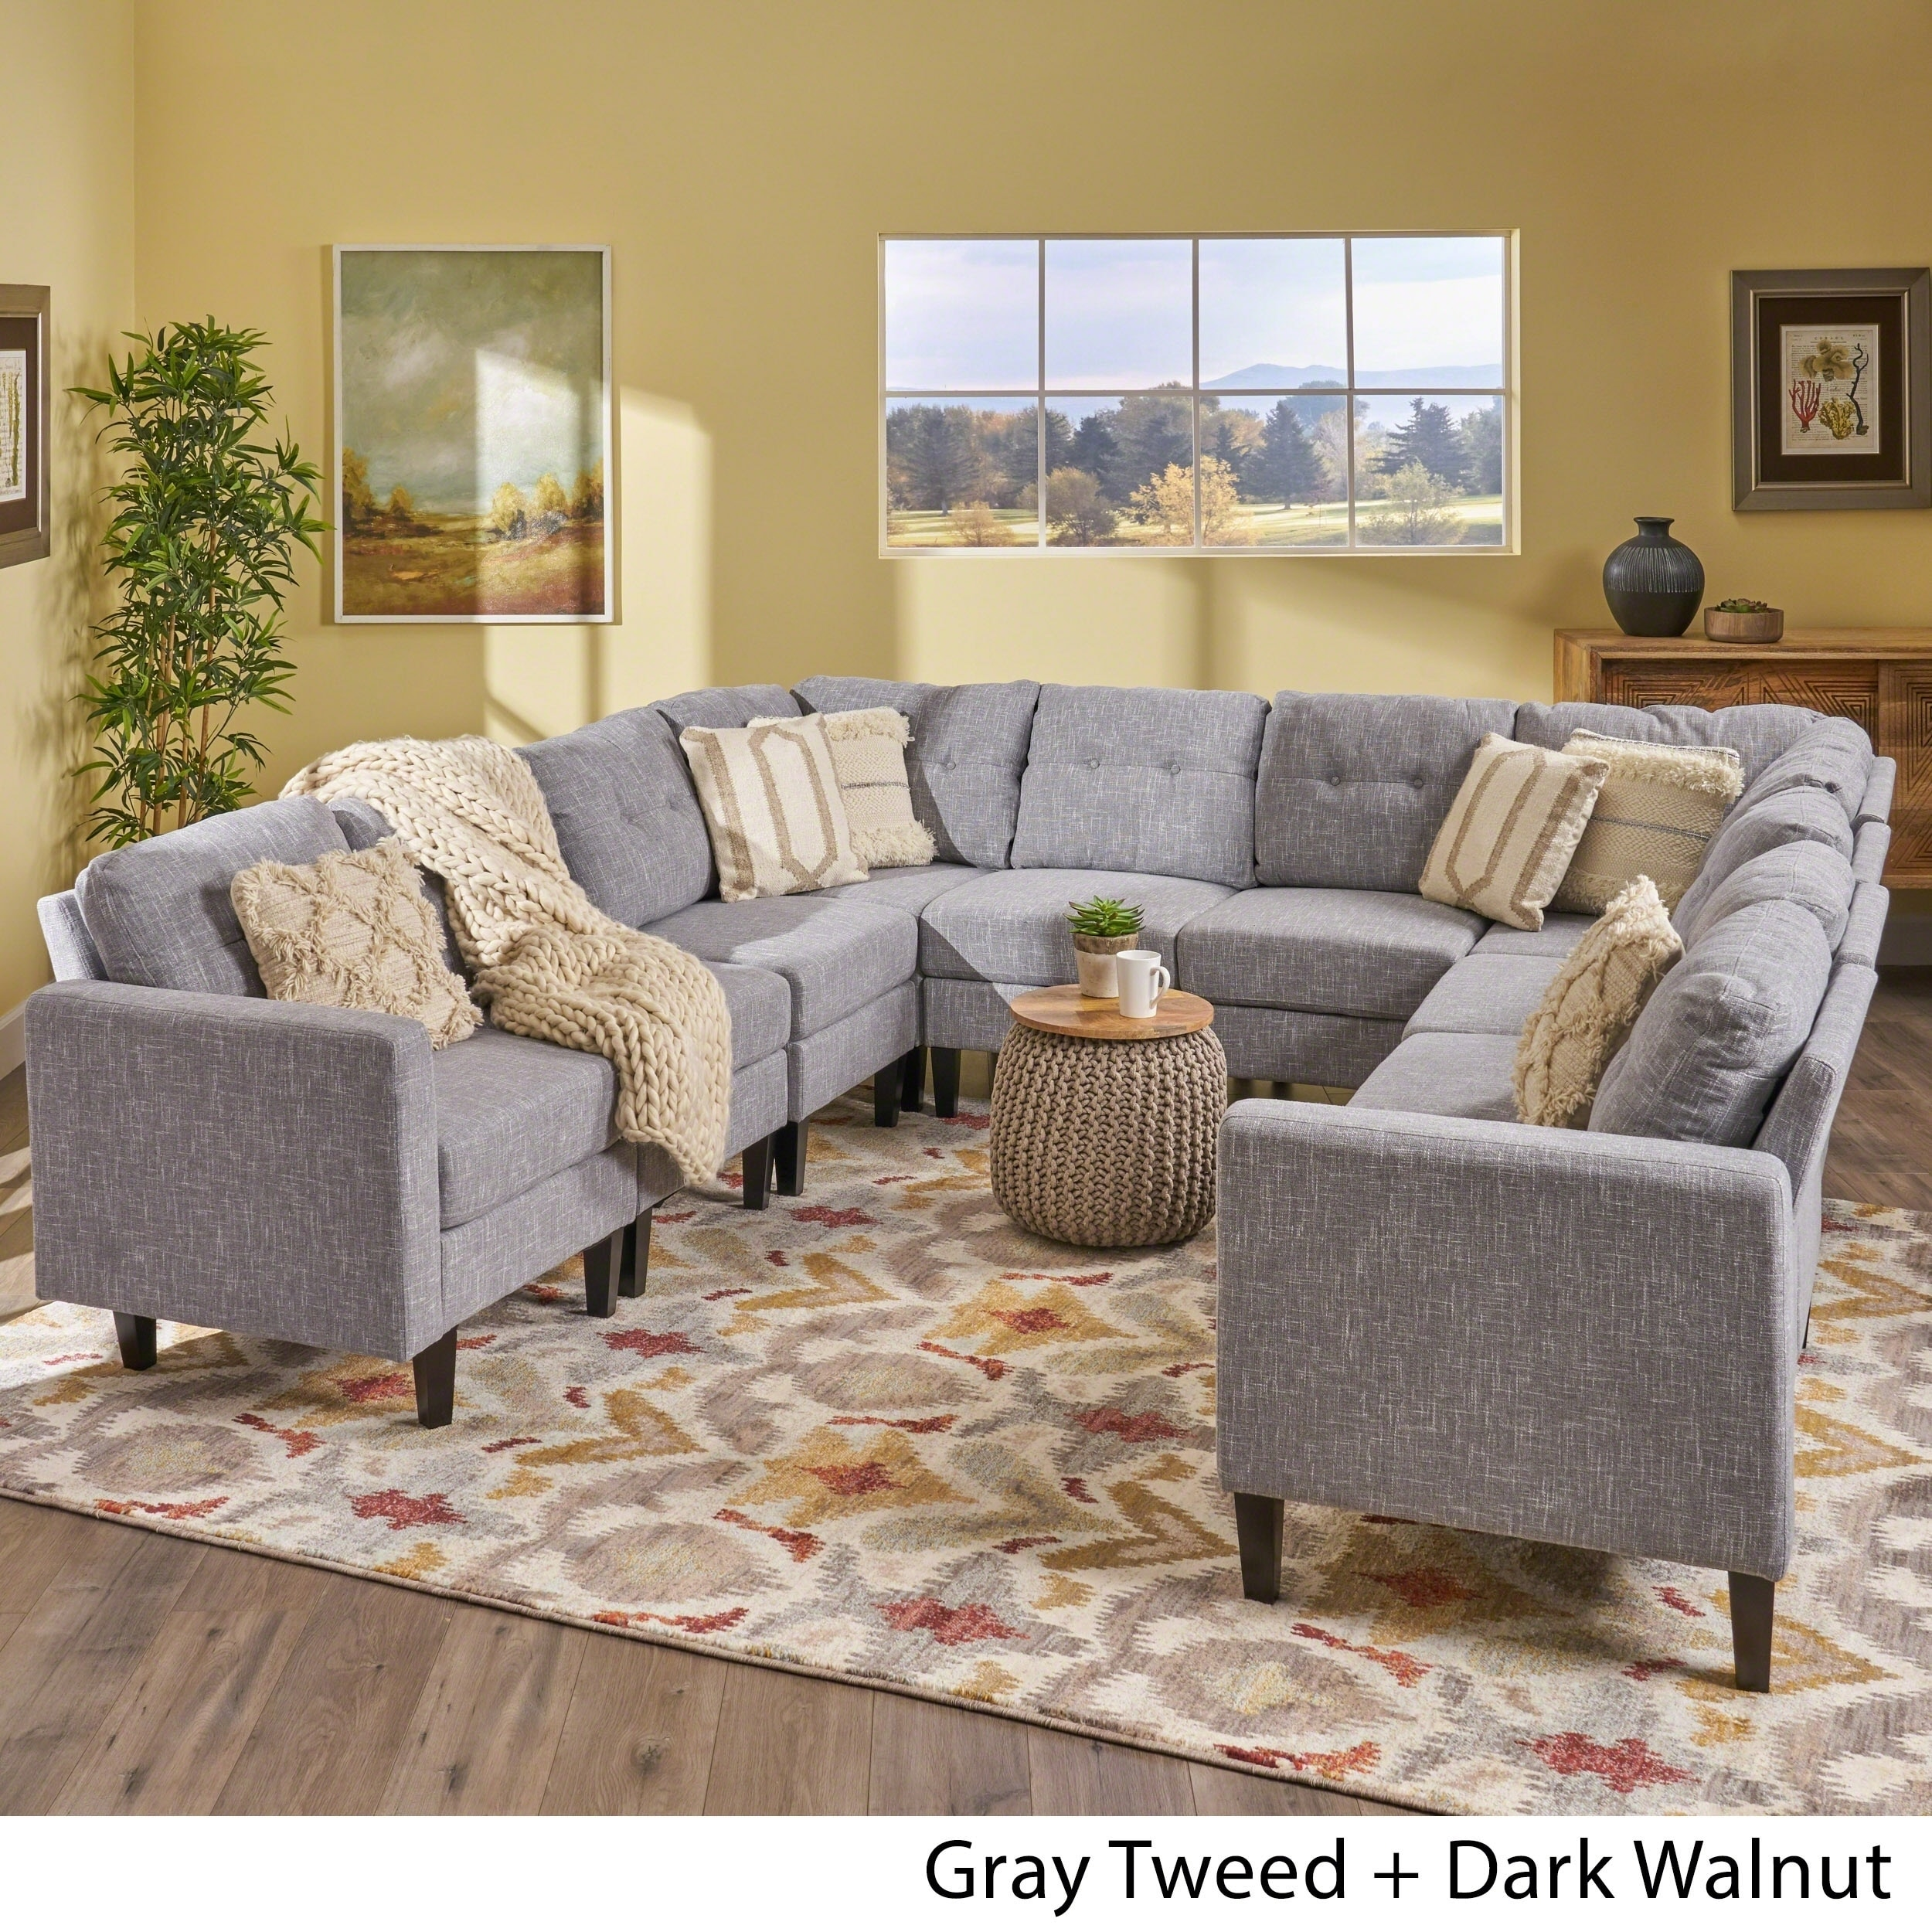 Gray U Shaped Sectional Charcoal Couch Home Decor Furniture